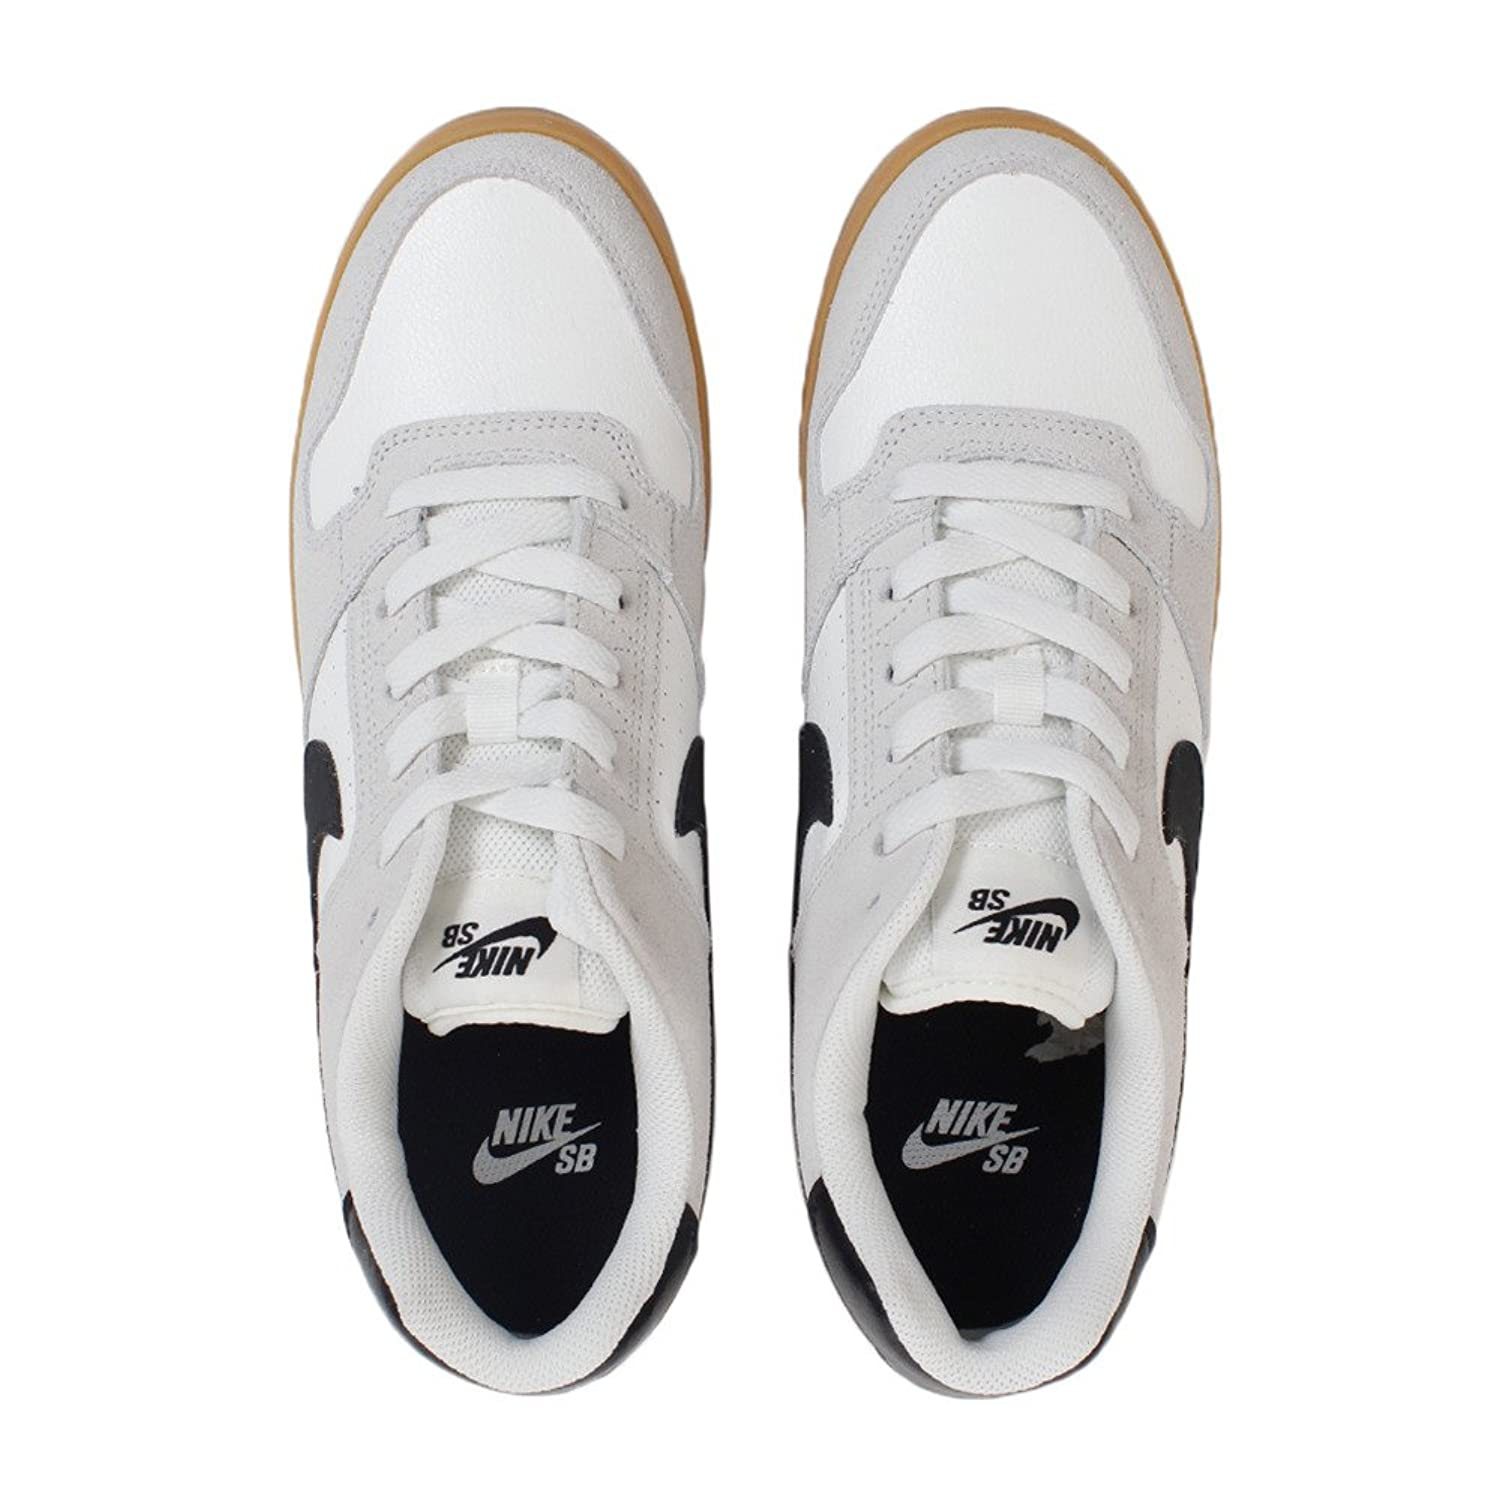 new style 40759 75088 Nike SB Delta Force Vulc, Chaussures de Skateboard Homme, Gris (Summit  White